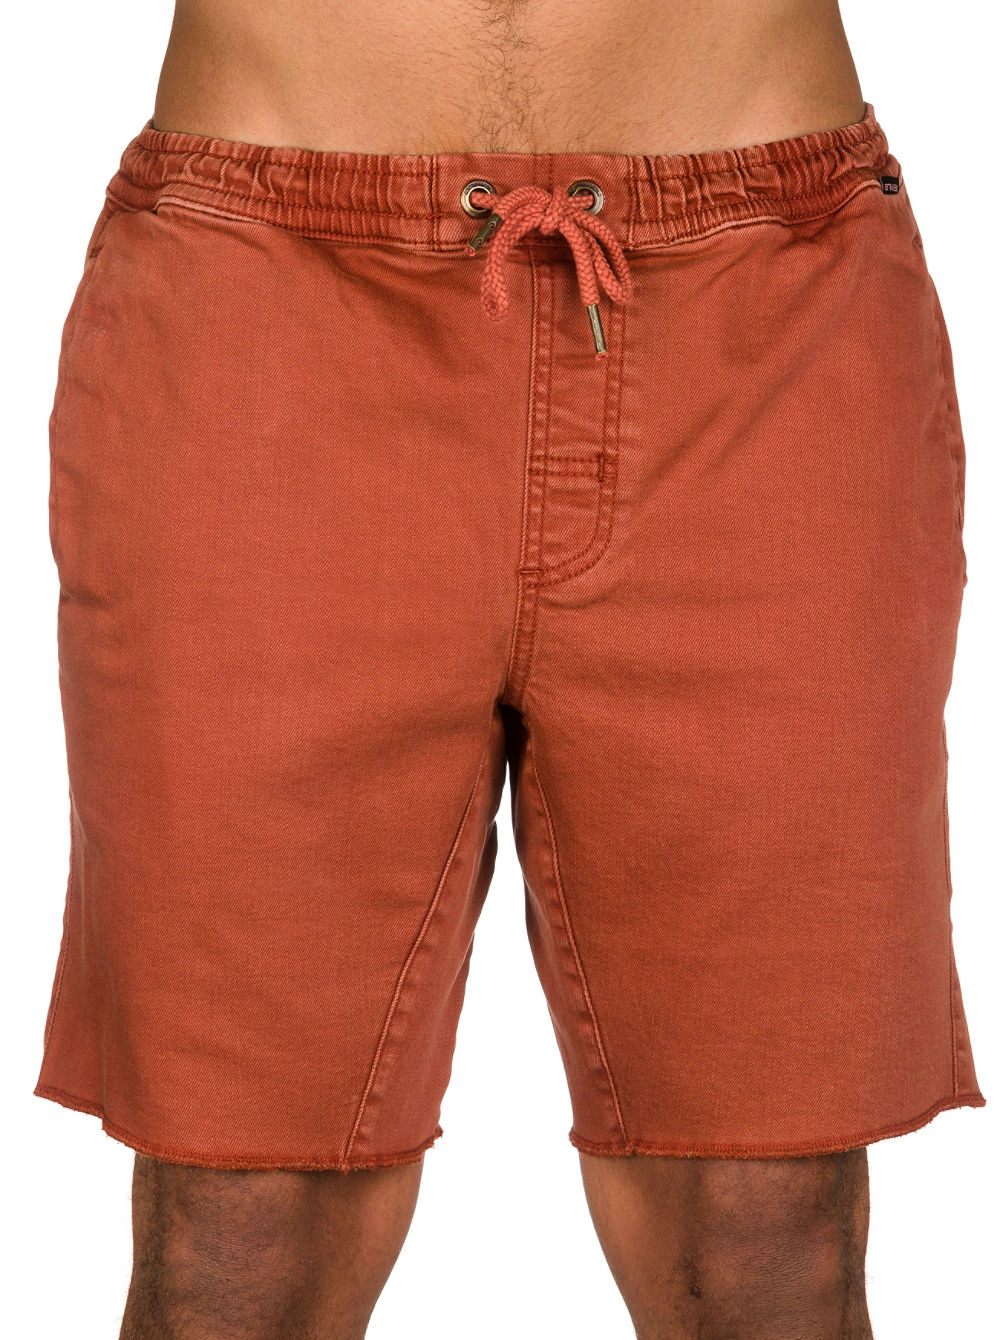 Canto Shorts